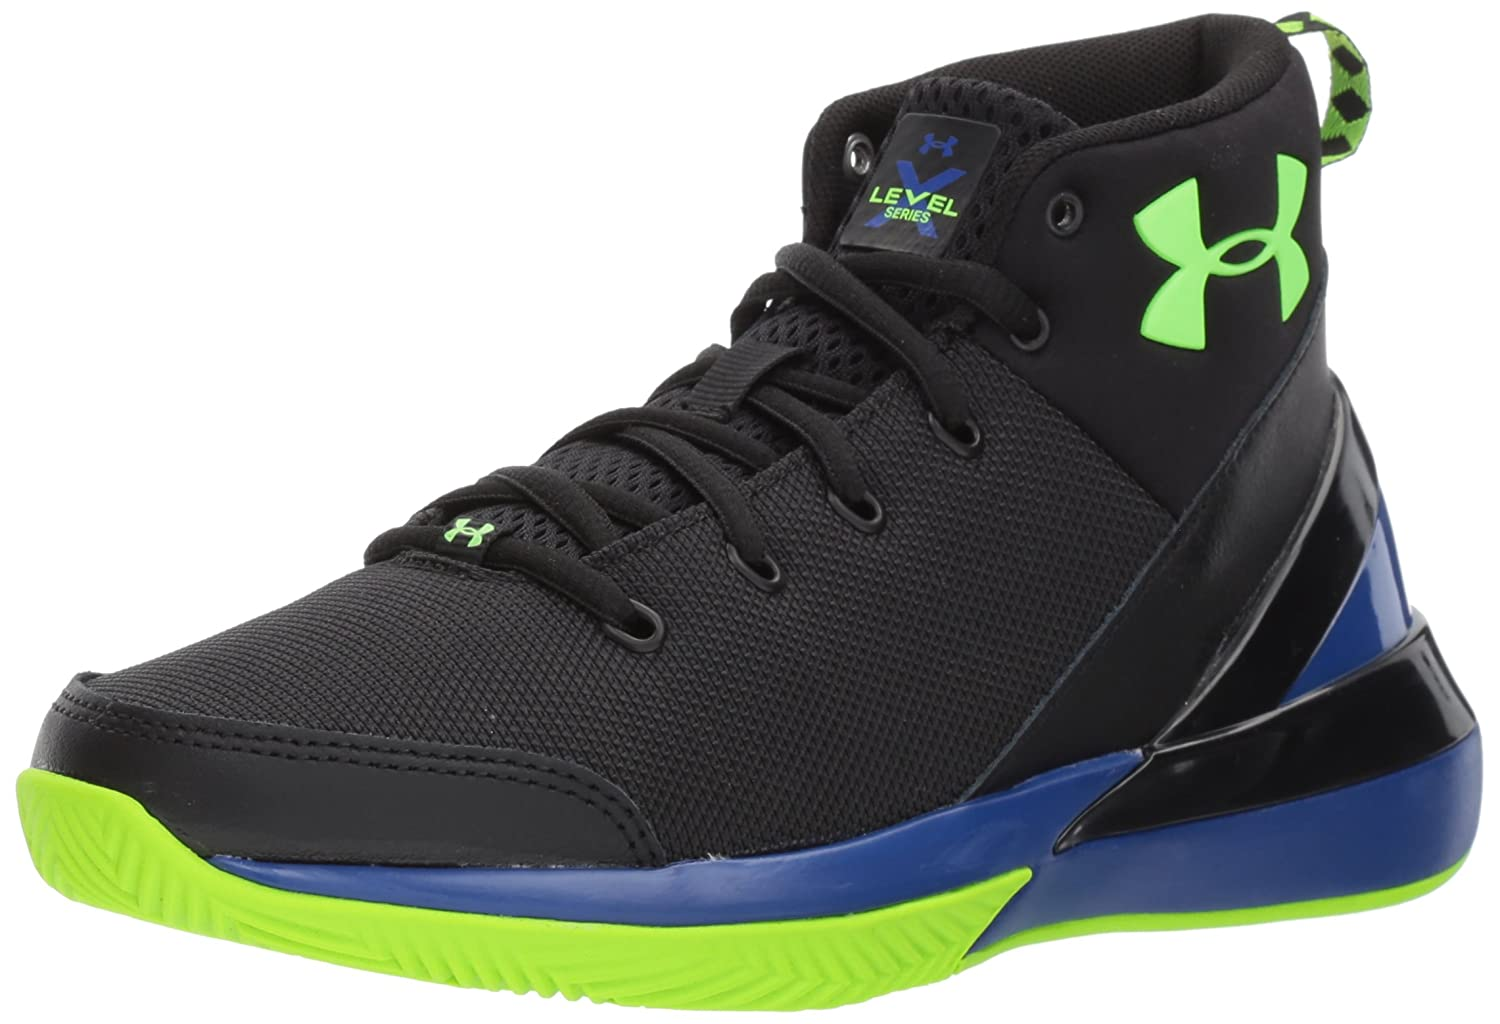 Under Armour Kids' Boys' Grade School X Level Ninja Running Shoe